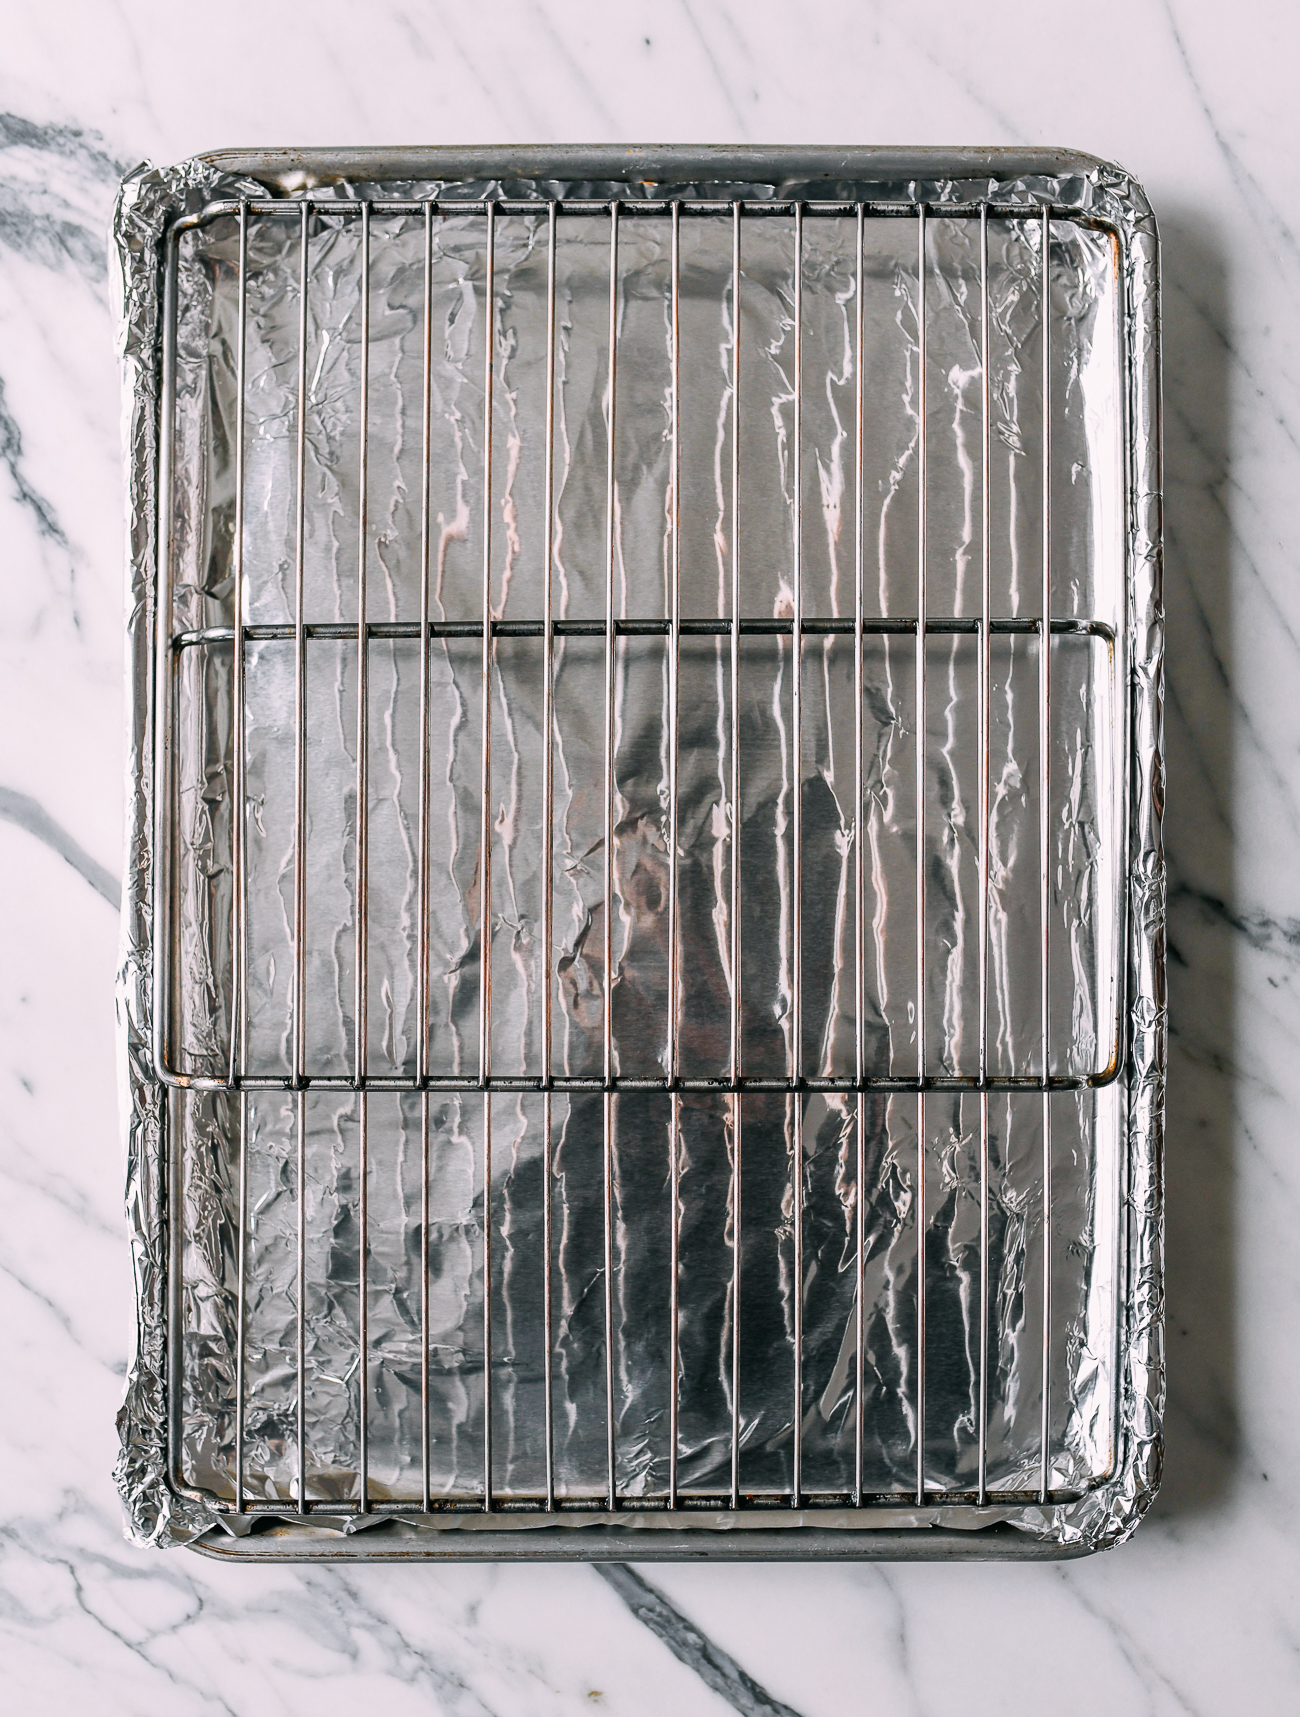 Foil-lined sheet pan with metal rack on top